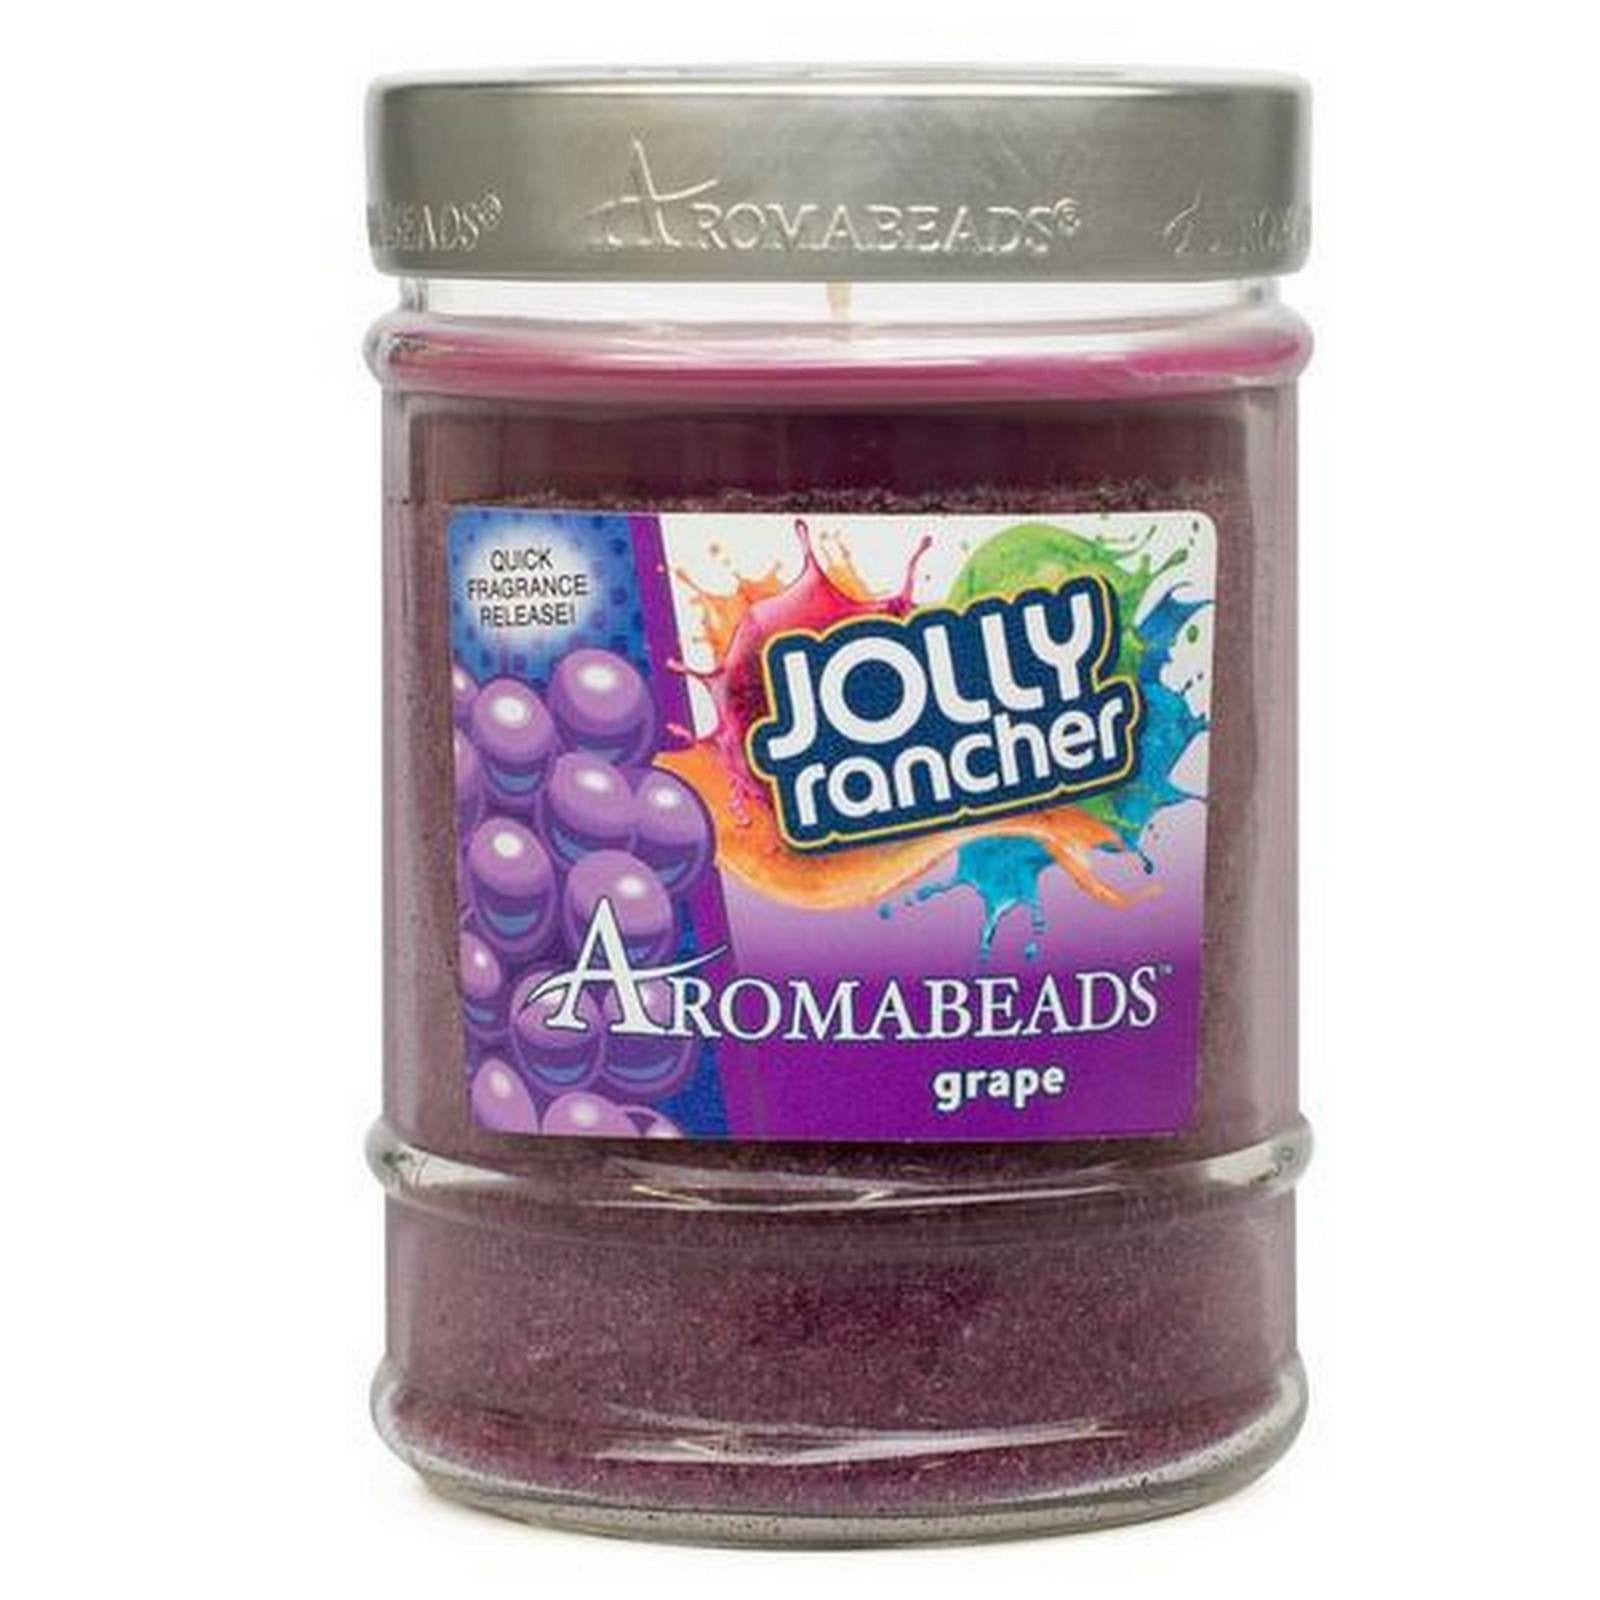 Aromabeads Jolly Rancher Grape Scented Candle Aromabeads Candlemart.com $ 9.99